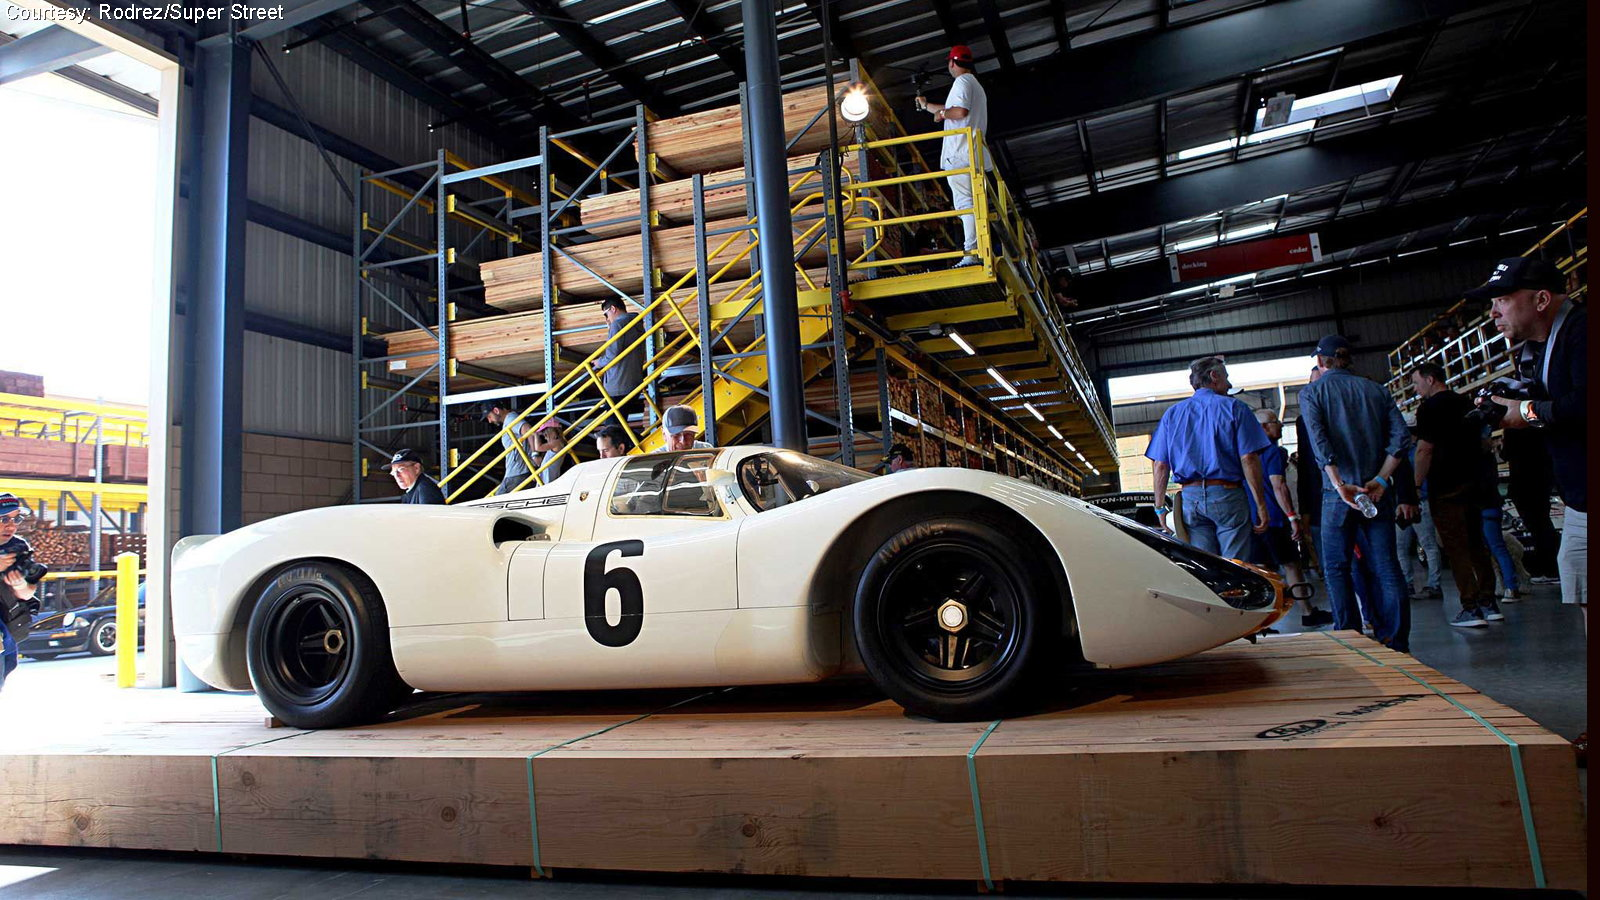 Air-Cooled Porsche Enthusiasts Converge on Lumber Giant